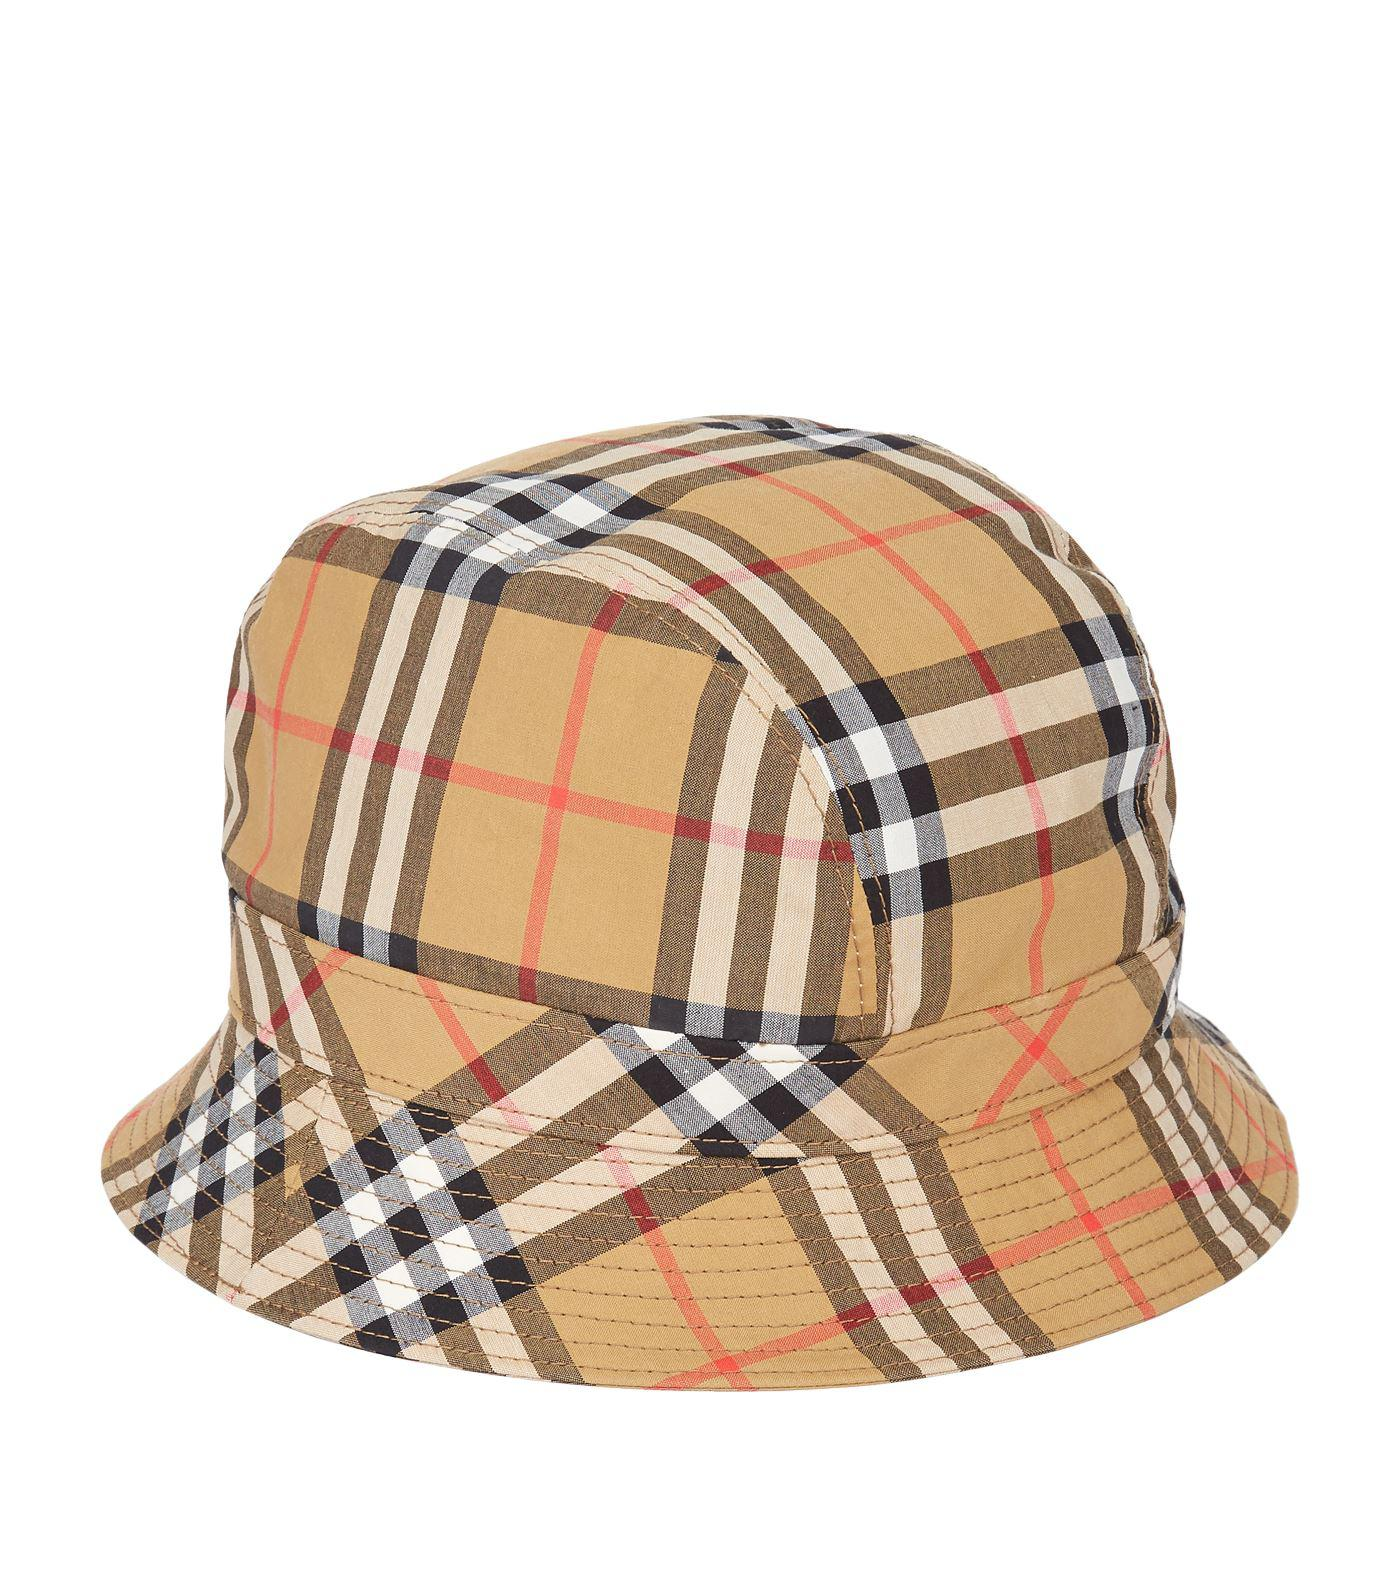 71dfaa7d731 Burberry Vintage Check Bucket Hat in Yellow - Lyst